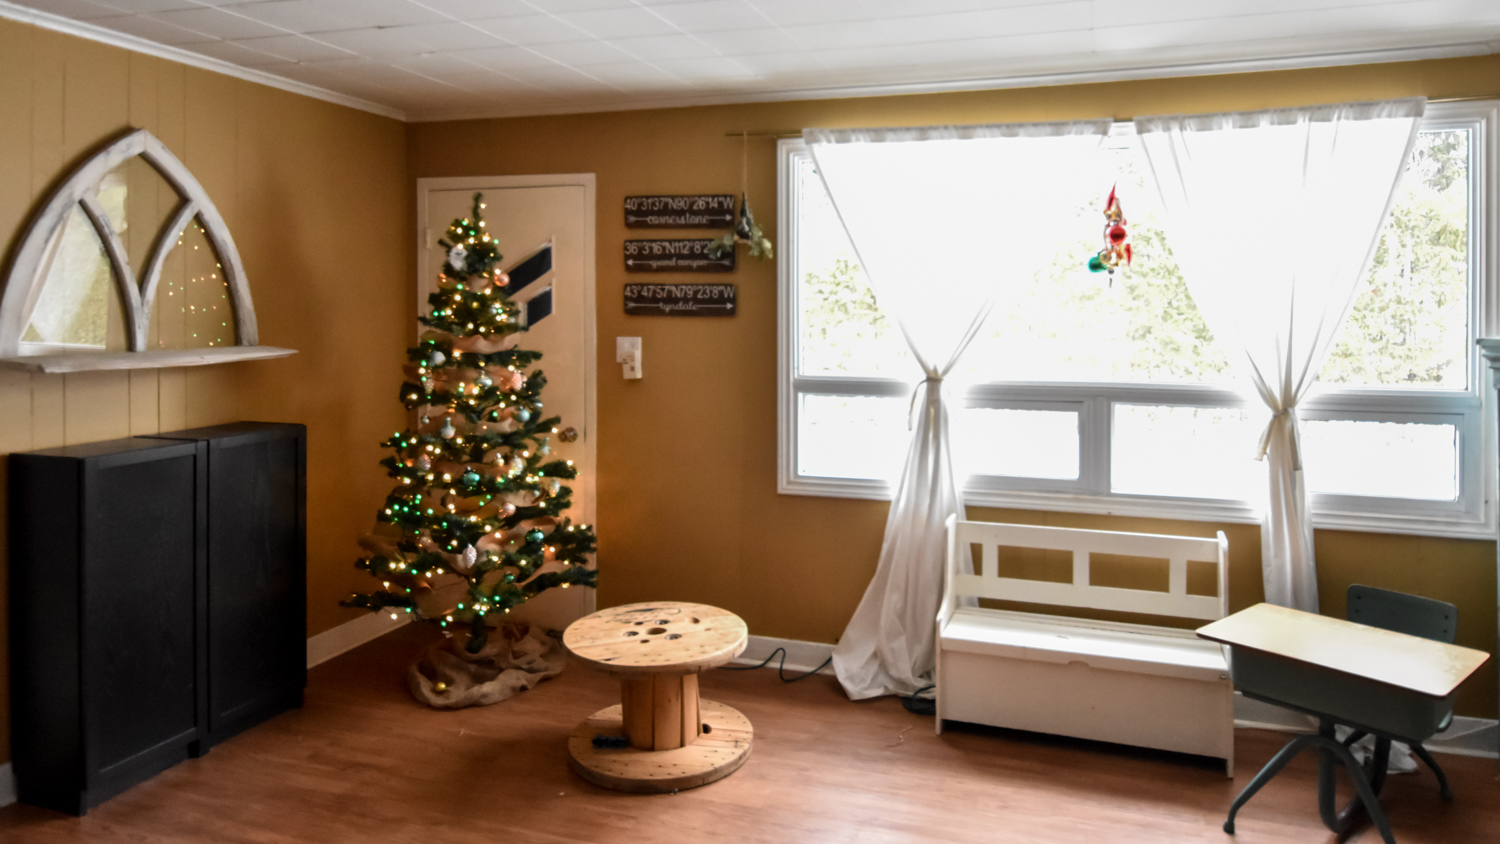 Image: Here the tree is tucked into a dim corner so the lights can glow. The kids will sit on the st...